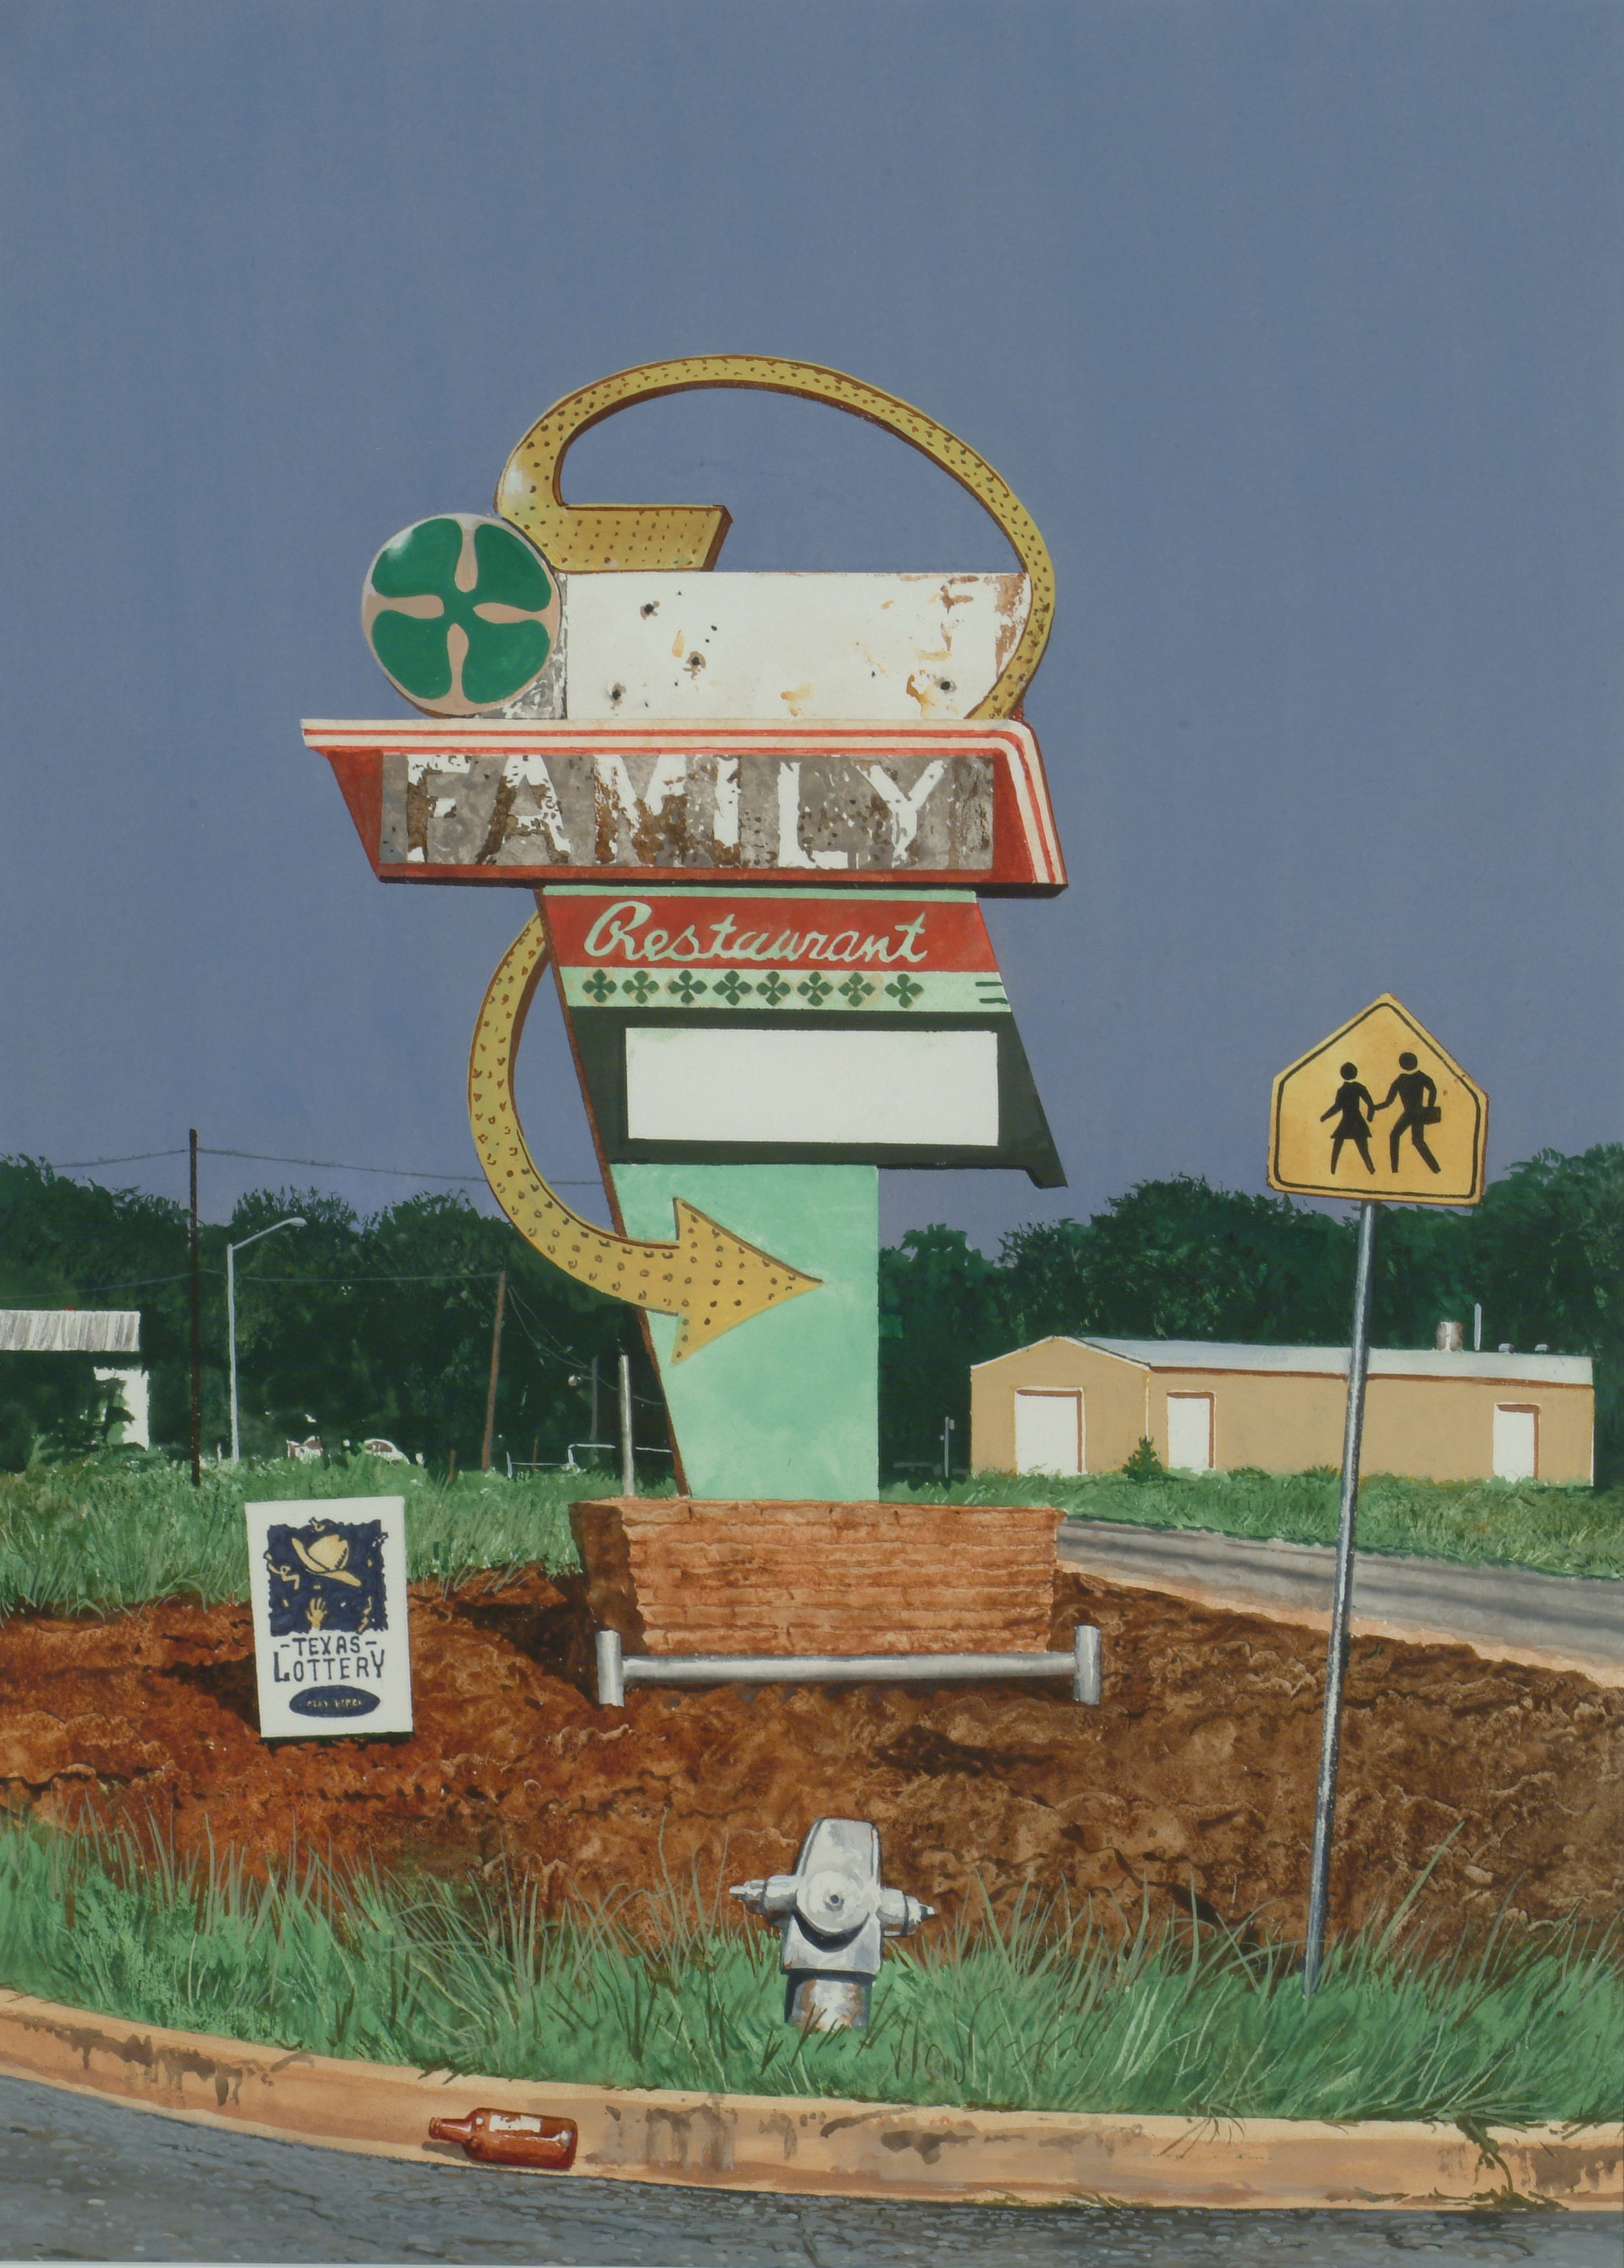 "Daniel Blagg, Family Values, 2005, watercolor on paper, 30 x 22"". Private Collection, Fort Worth, TX."